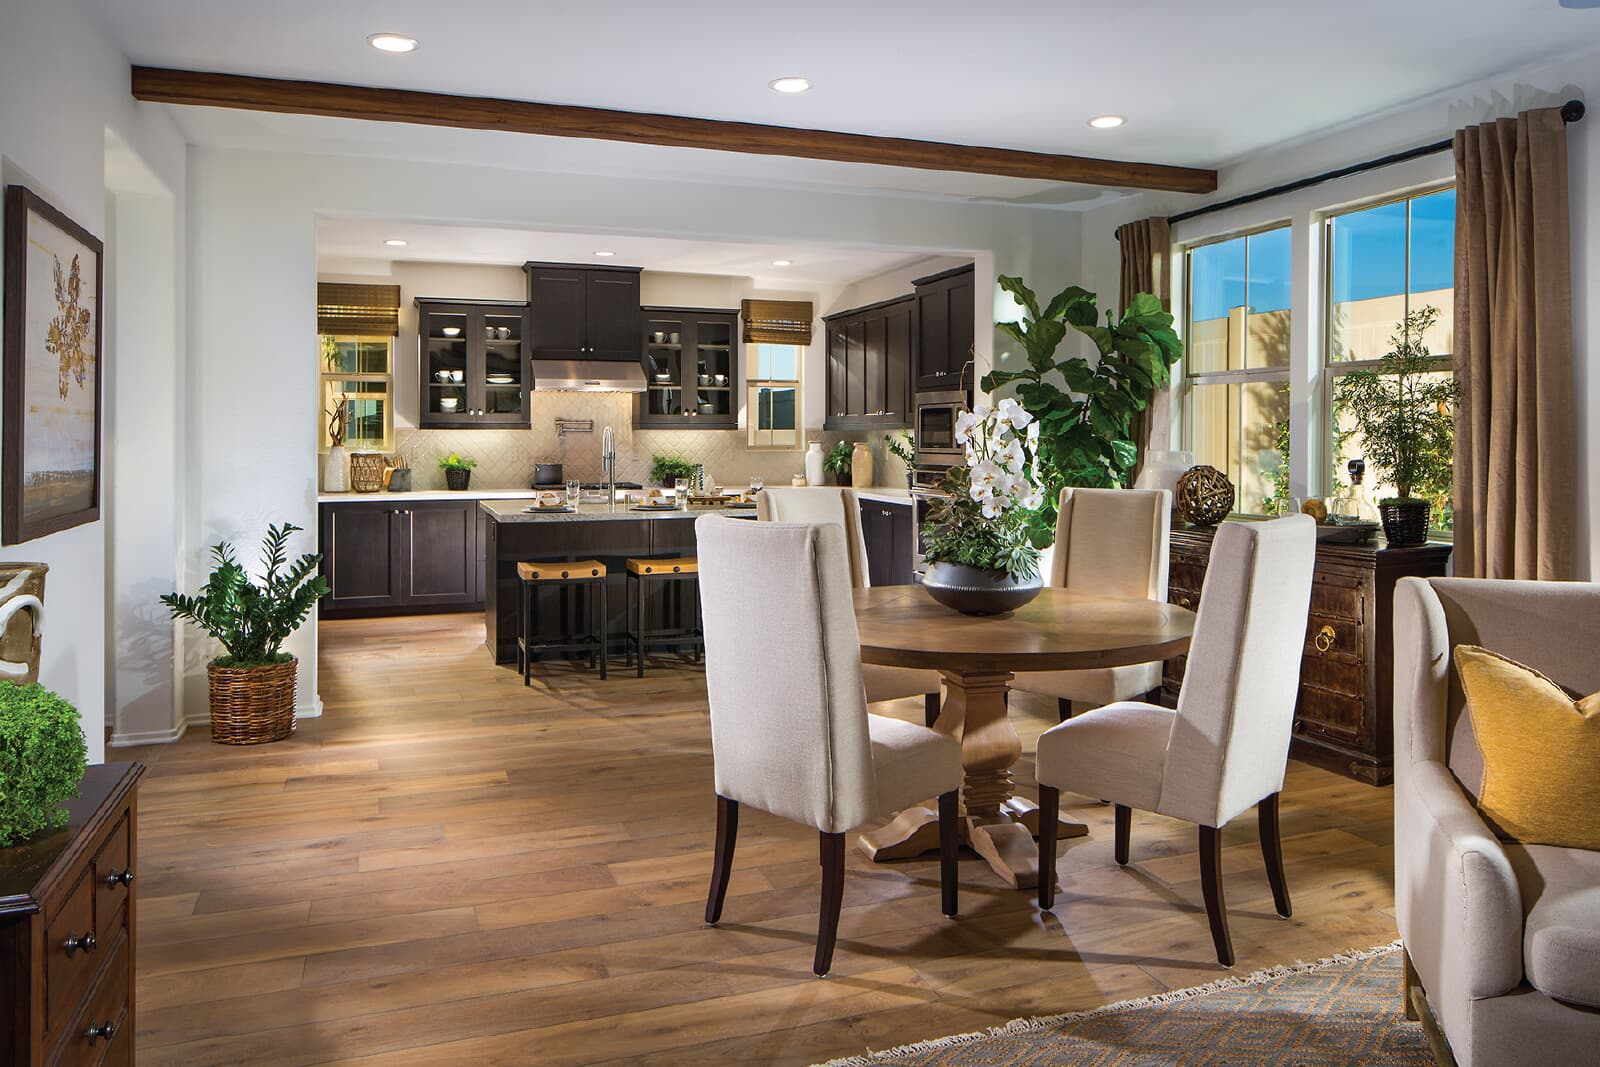 Residence 3 Kitchen | Vientos at Rancho Tesoro in San Marcos, CA | Brookfield Residential